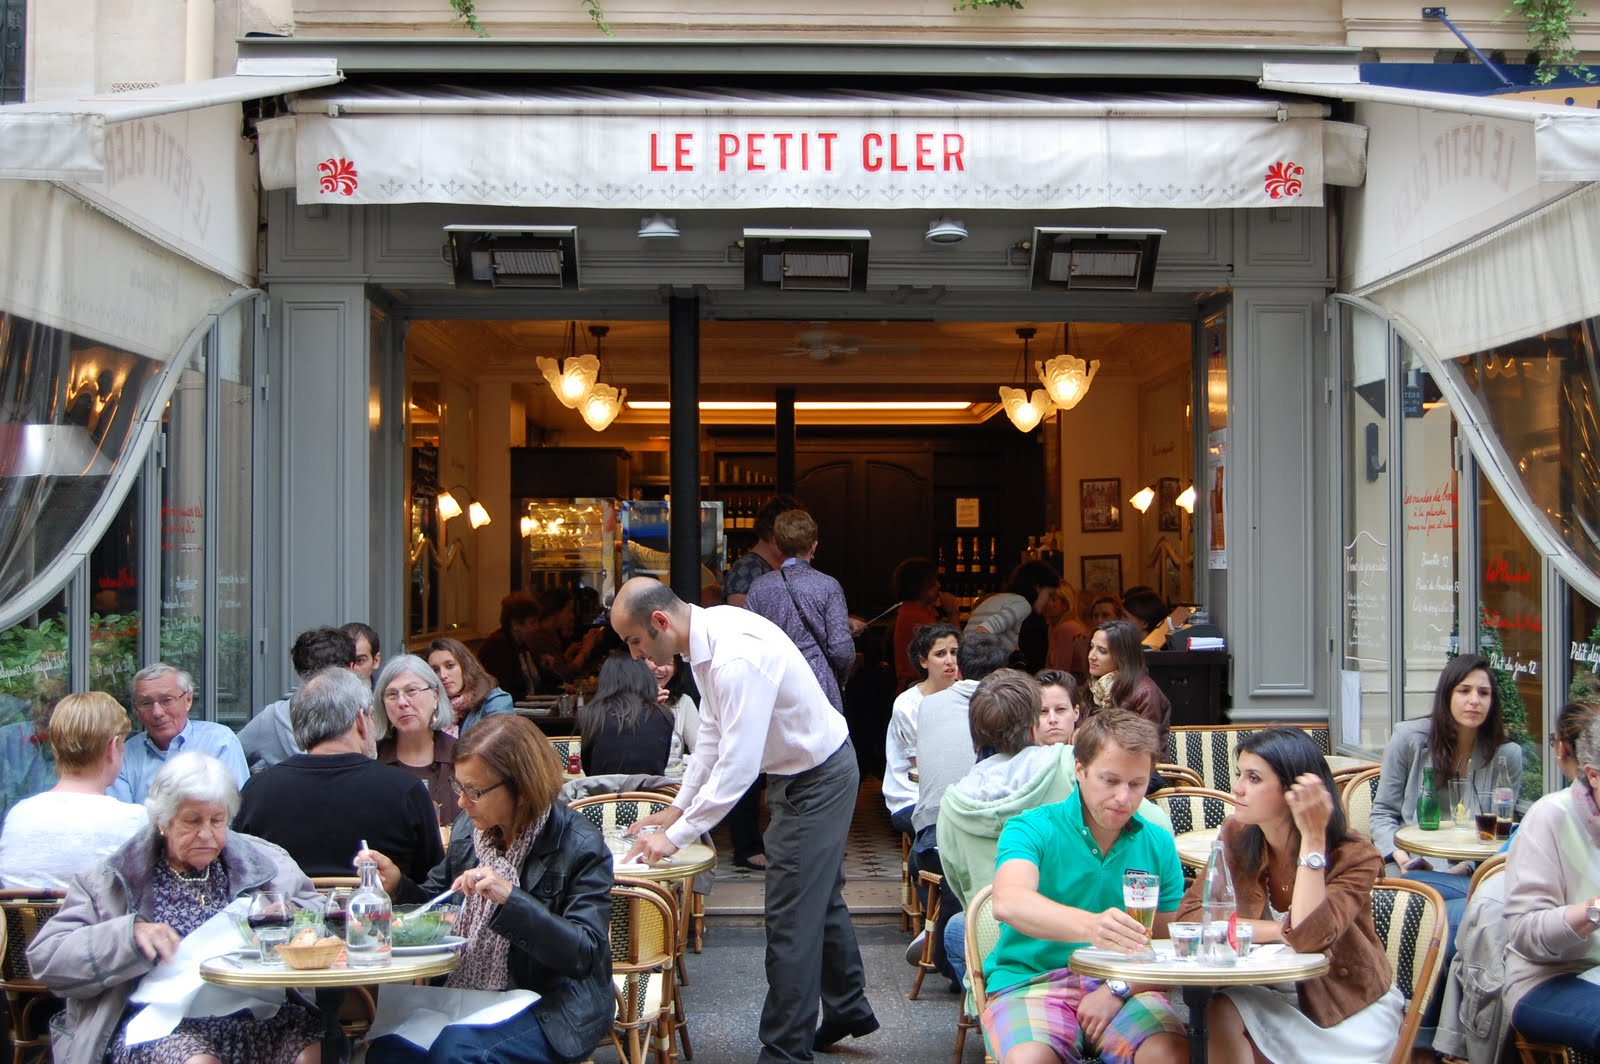 Food fairies due fate in cucina american food writers bloggers paris - La poste rue cler ...